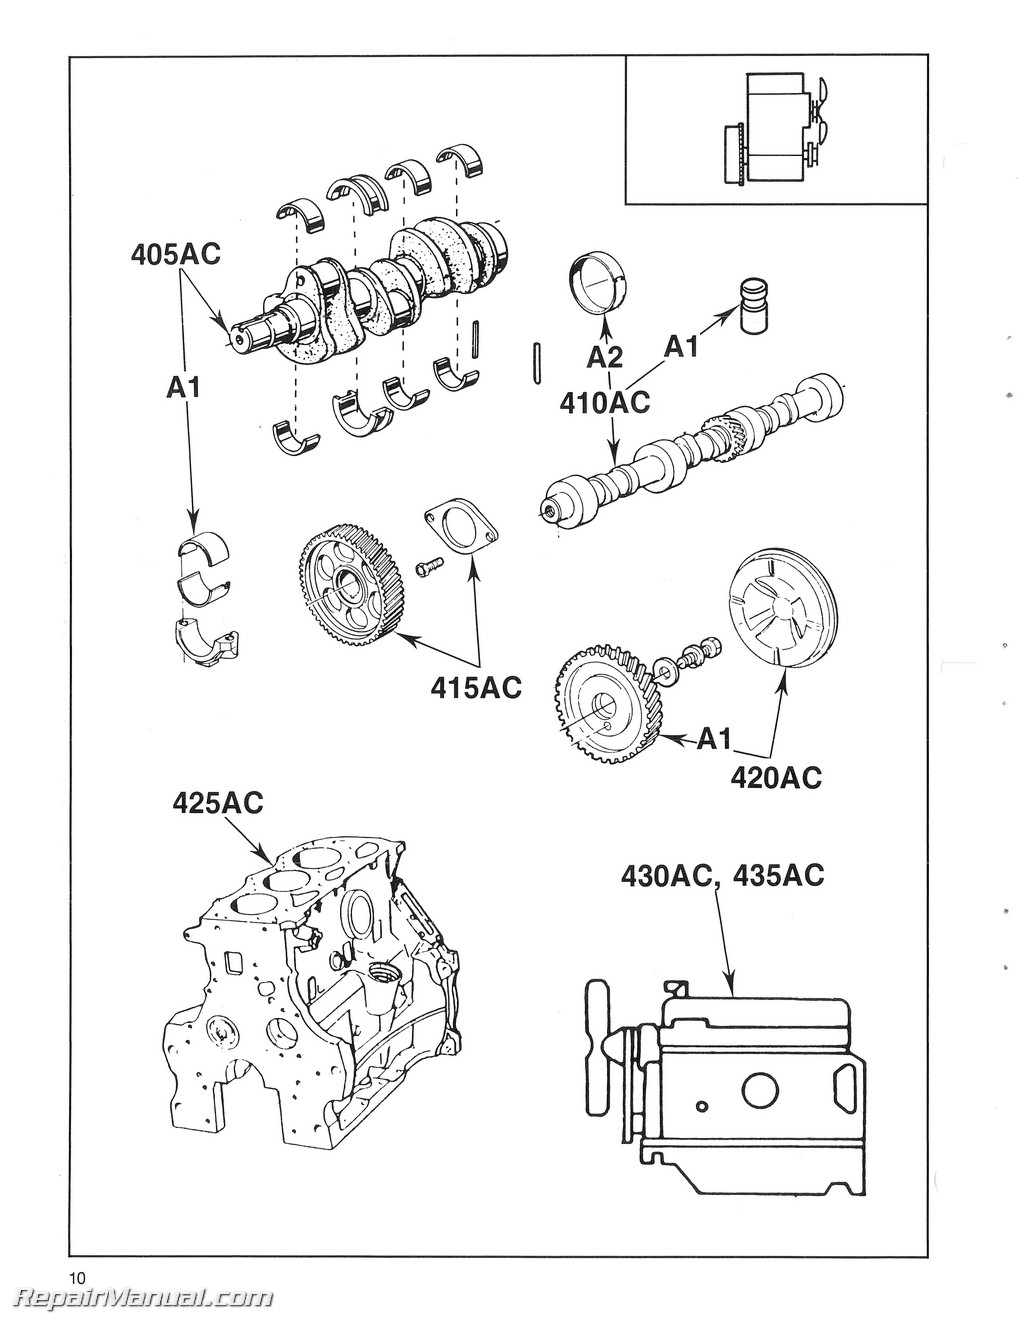 Ford Labor Repair Guide